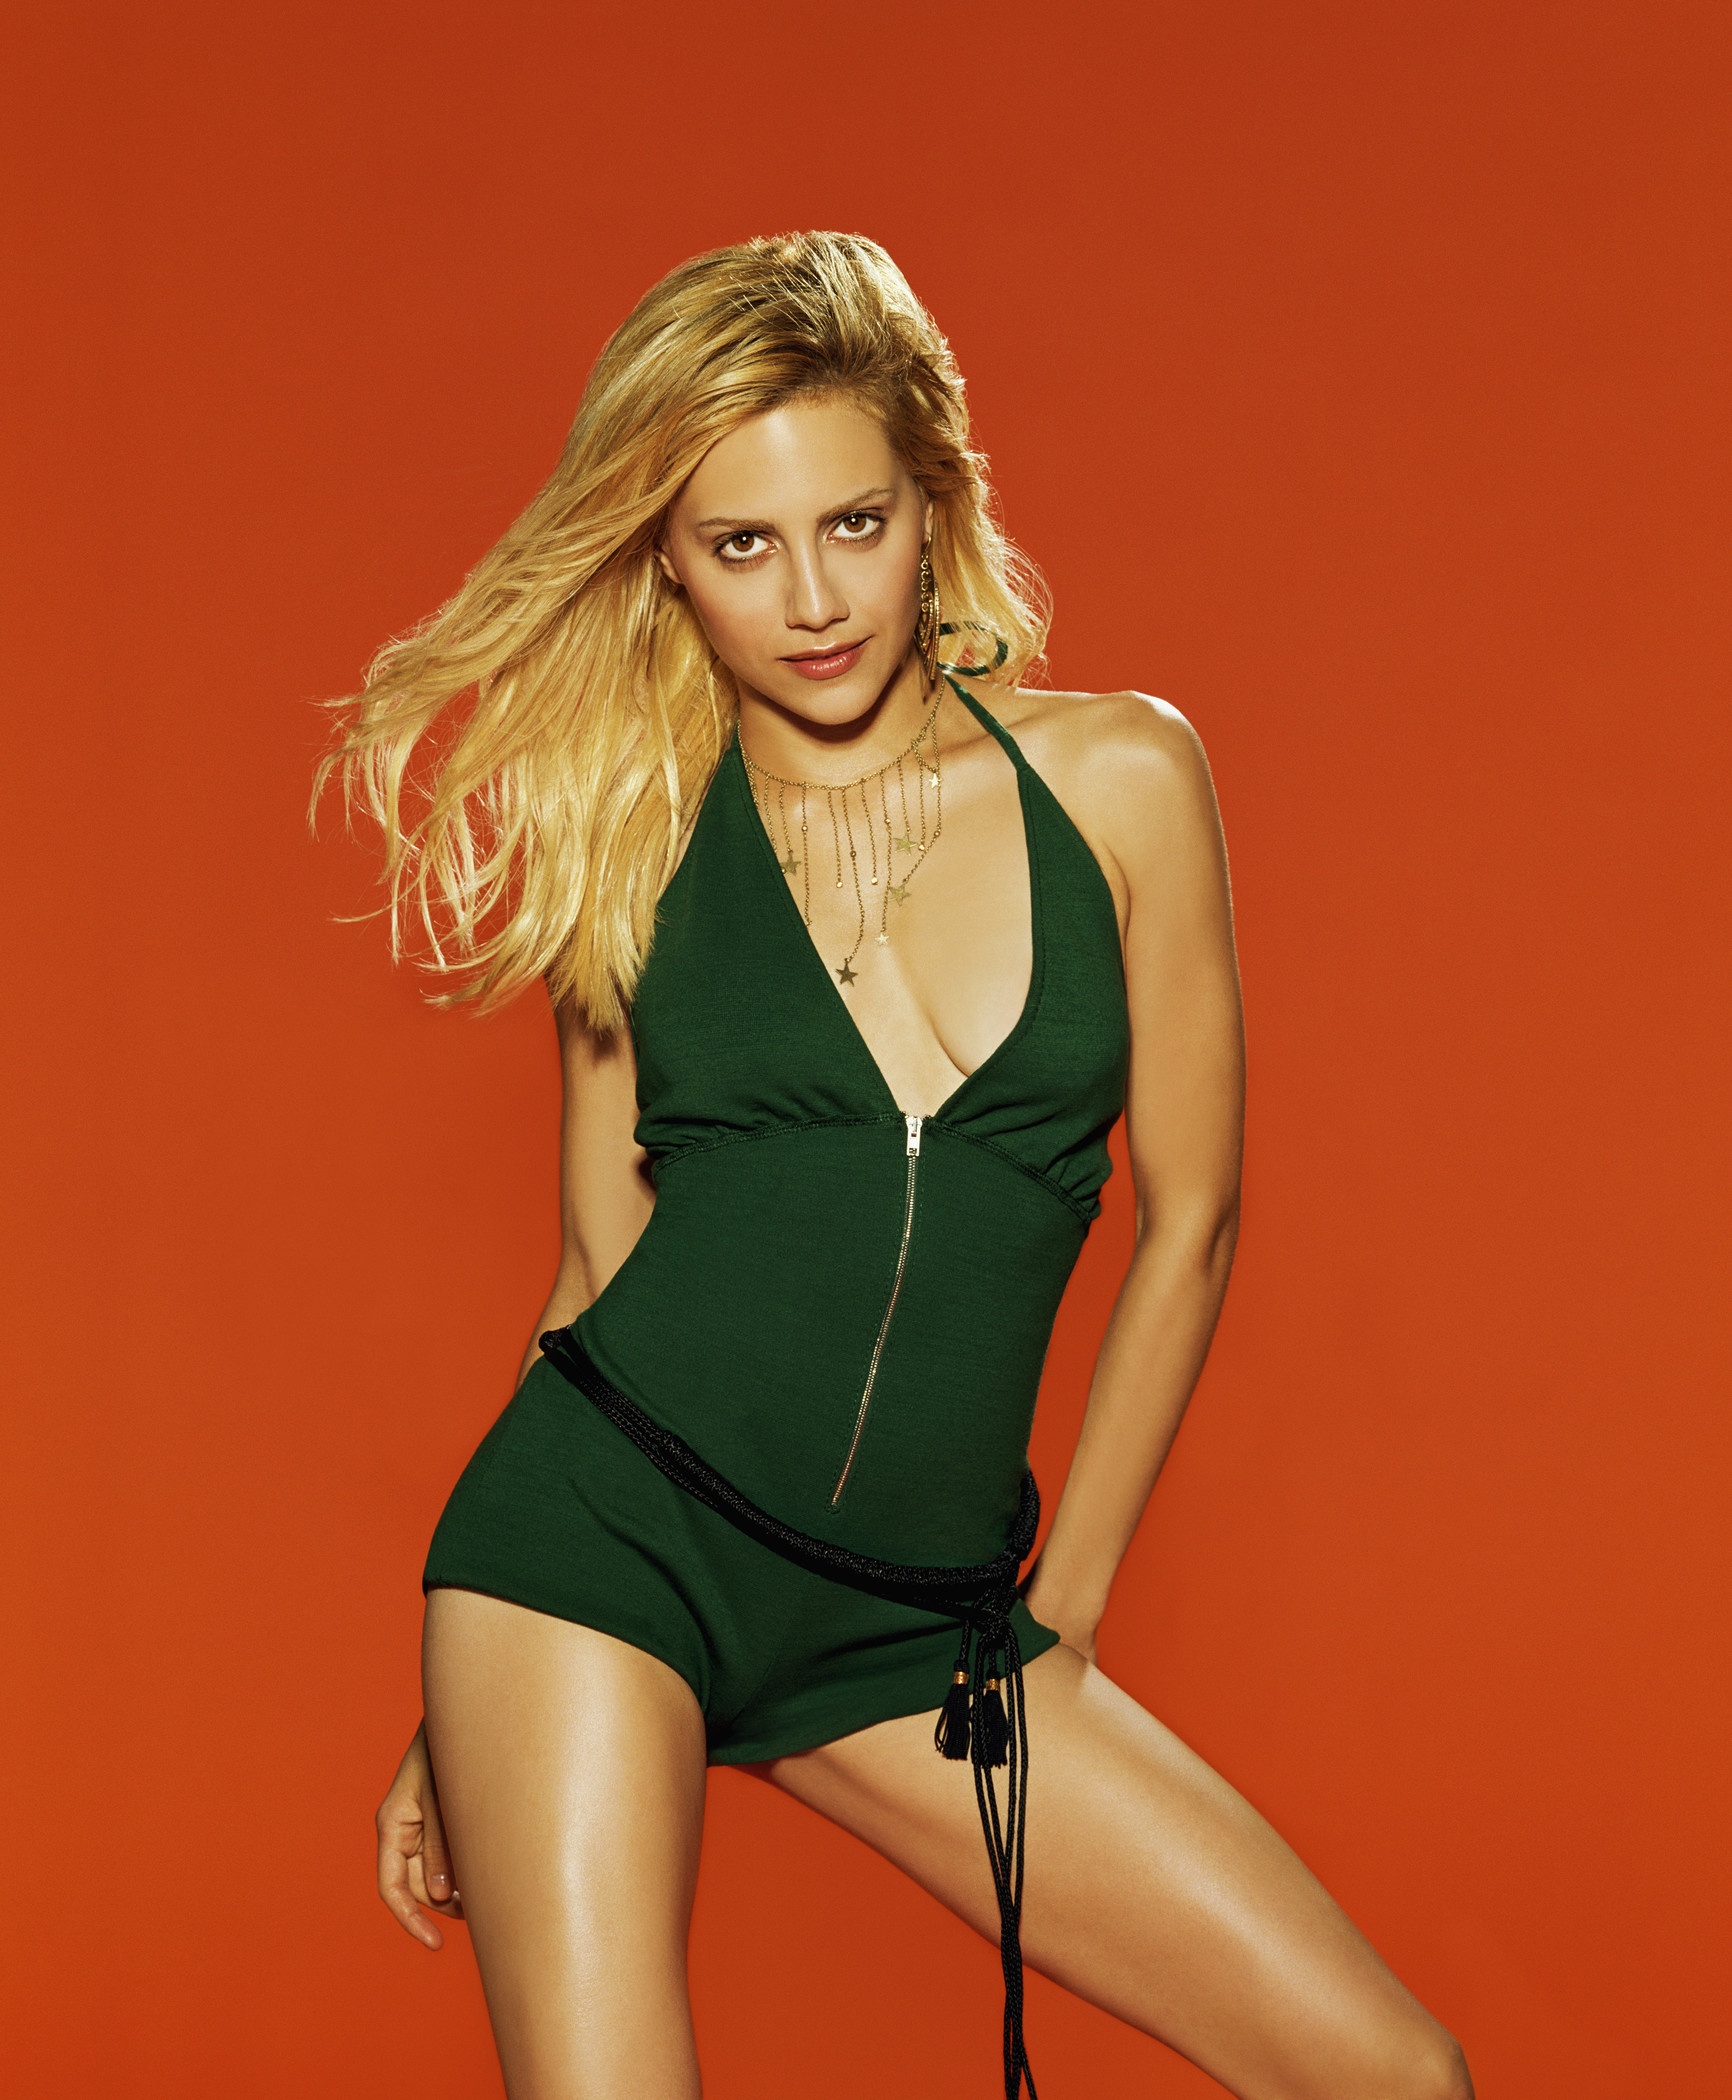 80592_Brittany_Murphy__George_Holz_shoot_1_122_529lo.jpg